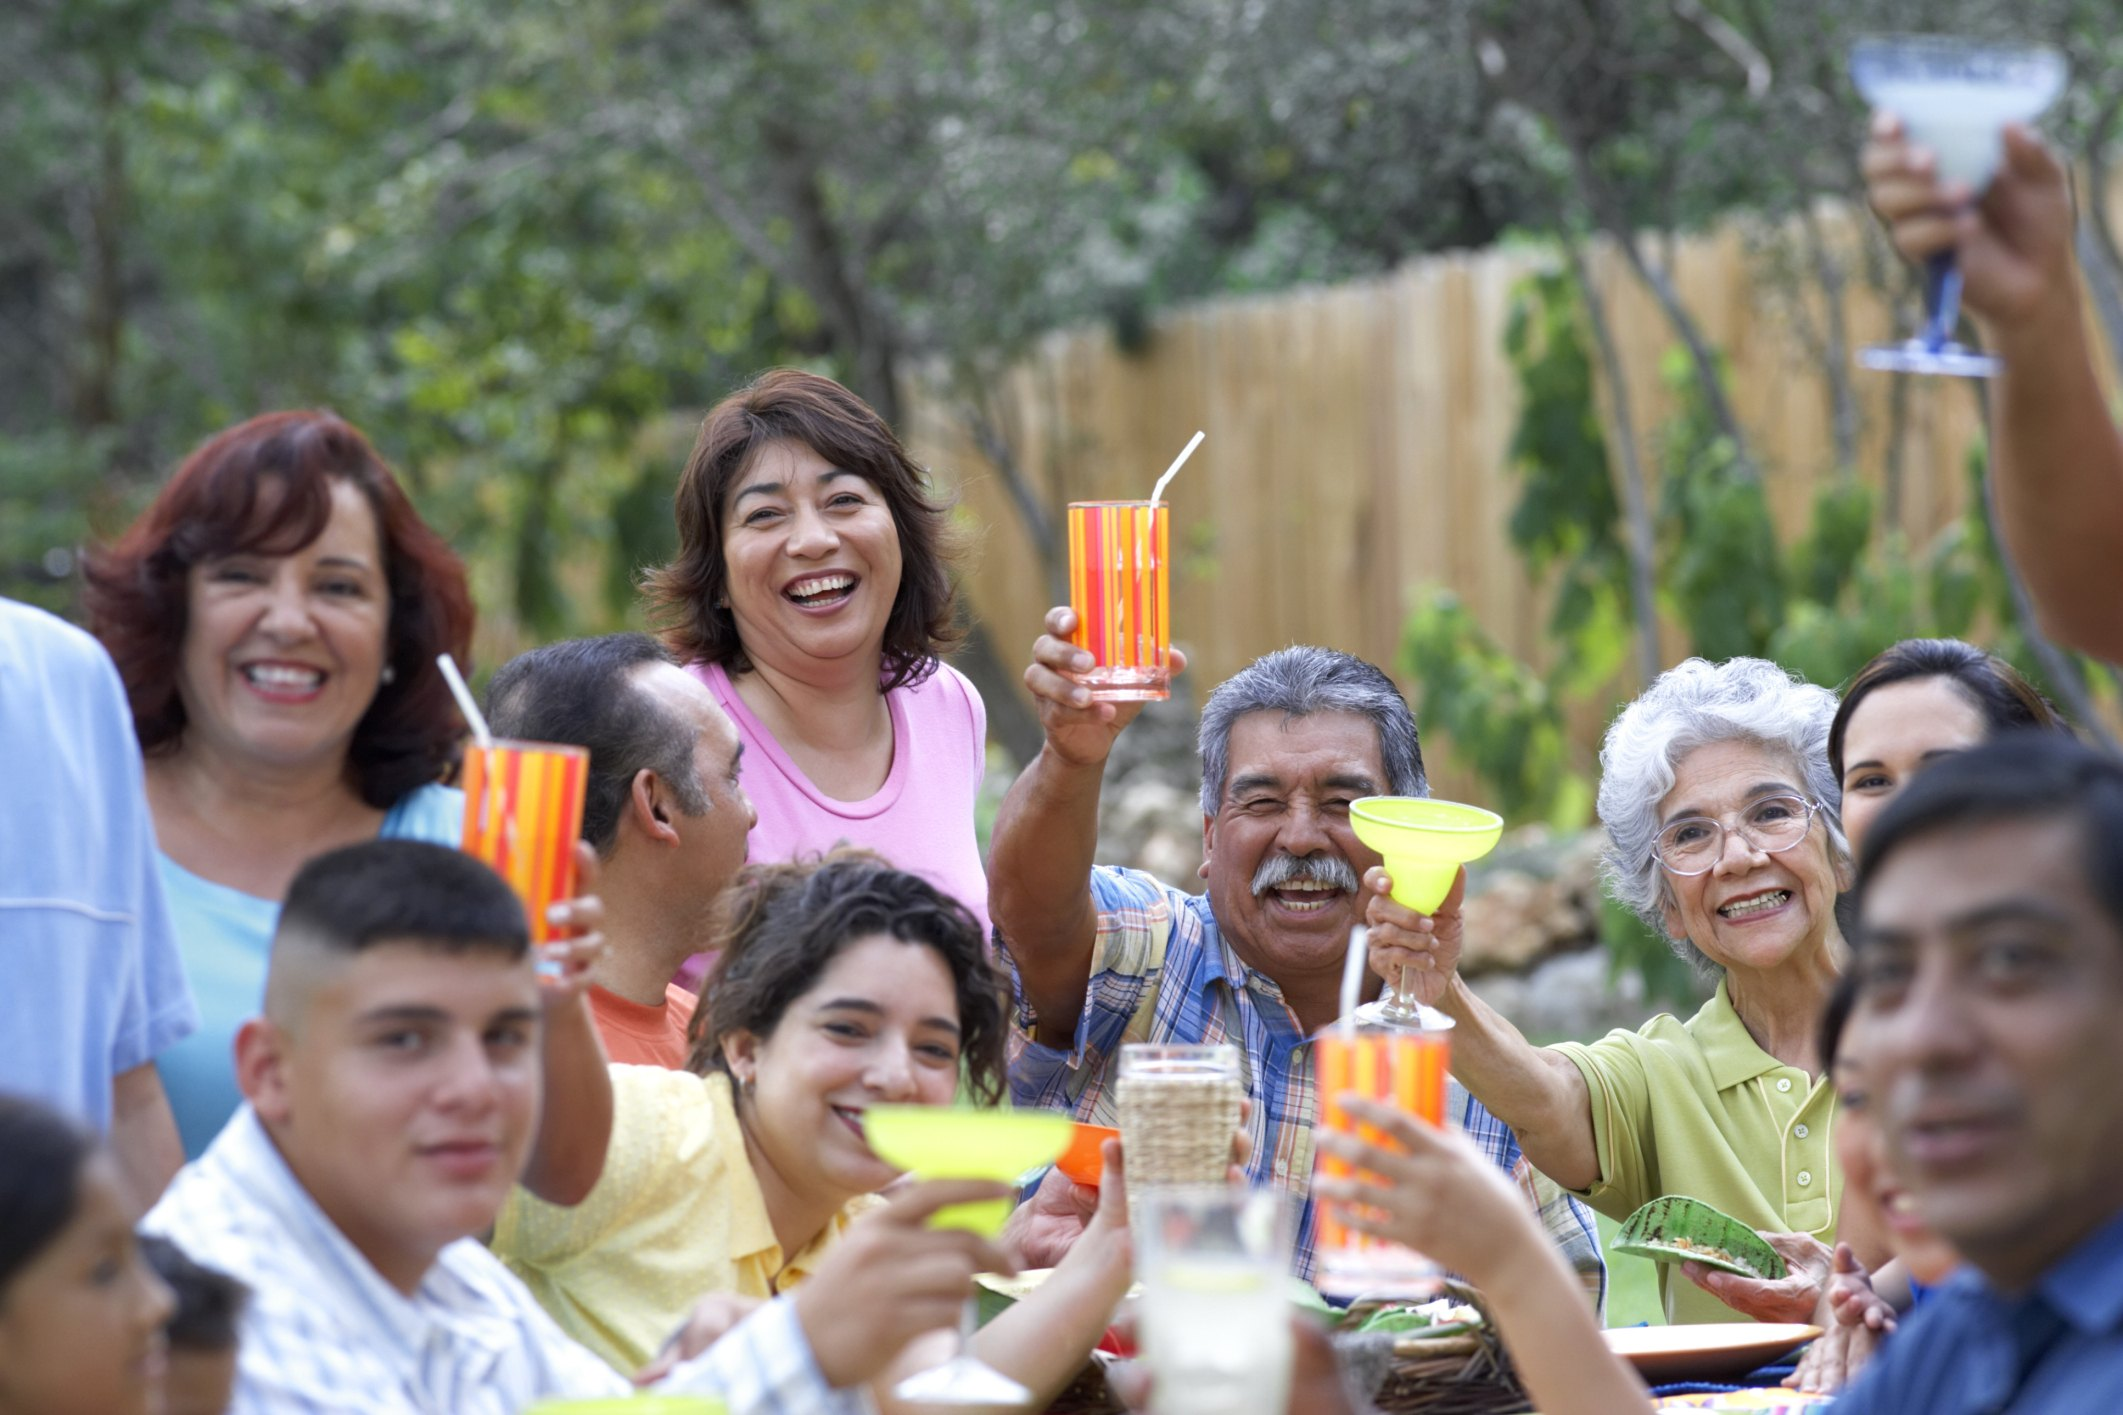 Questions To Ask At A Family Reunion To Stump People Ehow